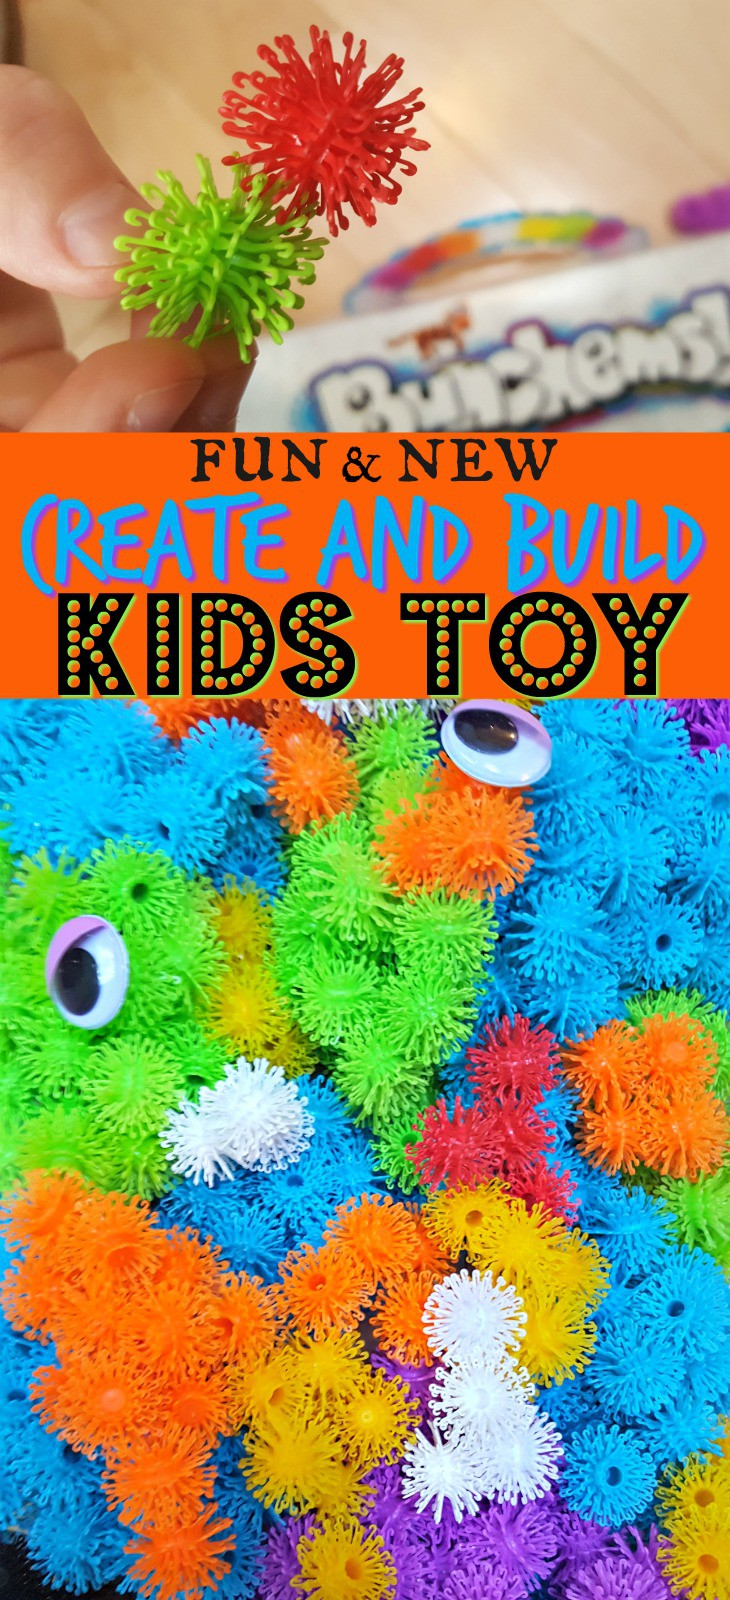 Need a great gift idea for a kids birthday or for Christmas? This new build and create toy is great for encouraging kids' imaginative play!